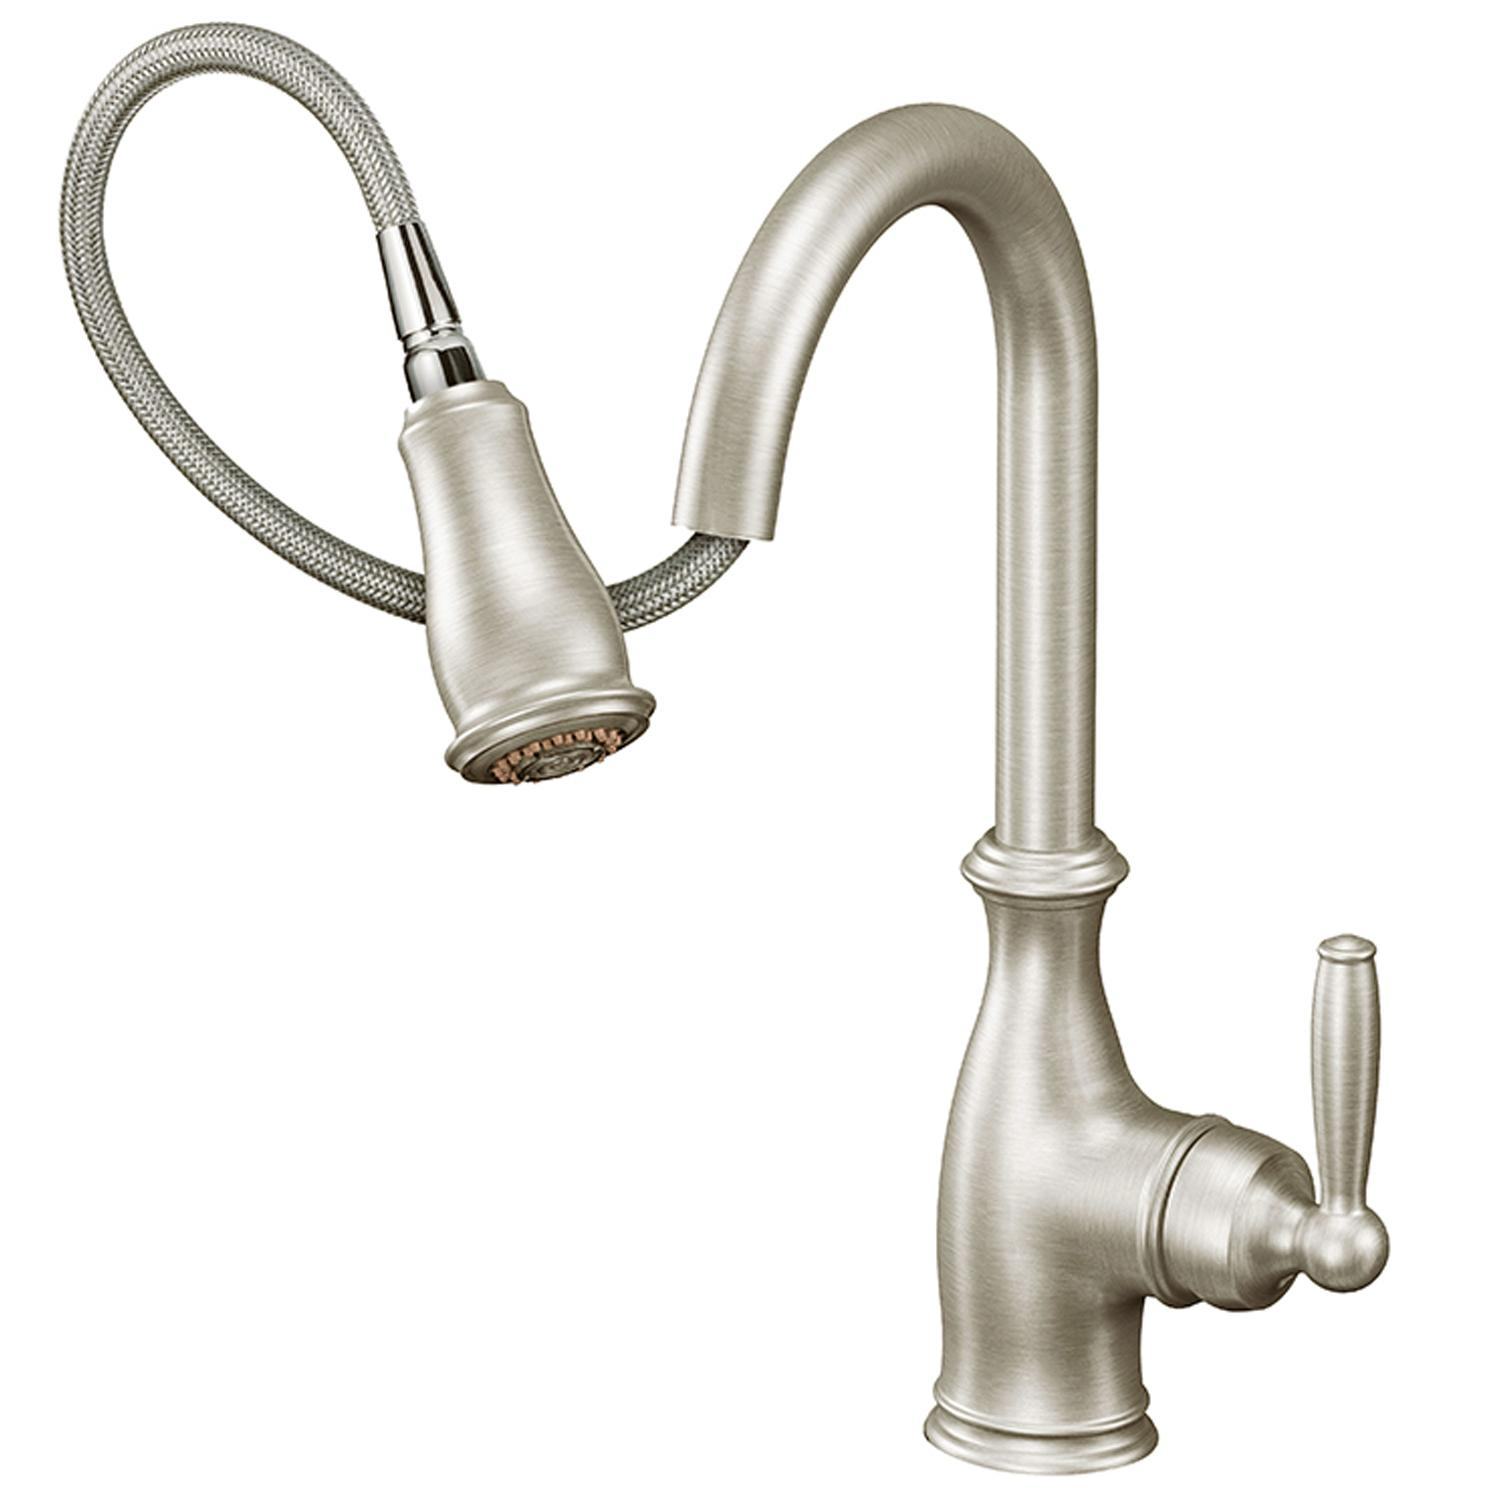 Moen 7185C Brantford e Handle High Arc Pull down Kitchen Faucet